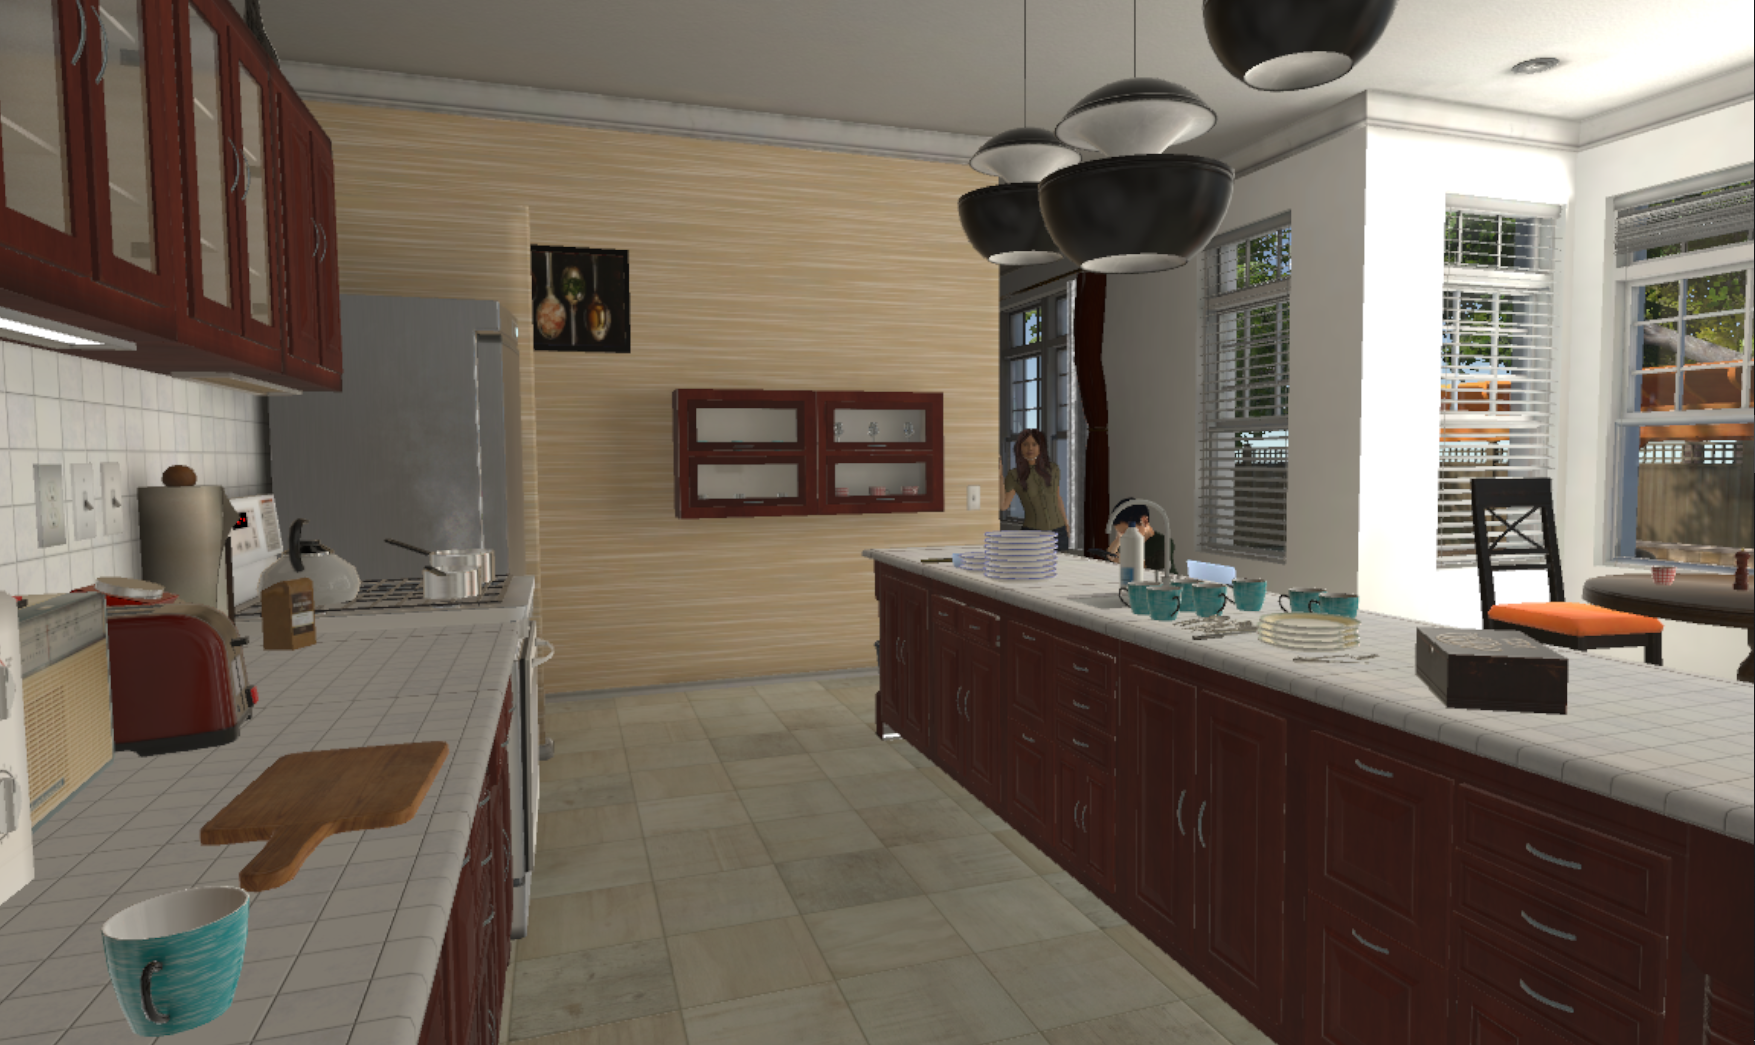 Interacting with virtual characters in an immersive kitchen scenario.